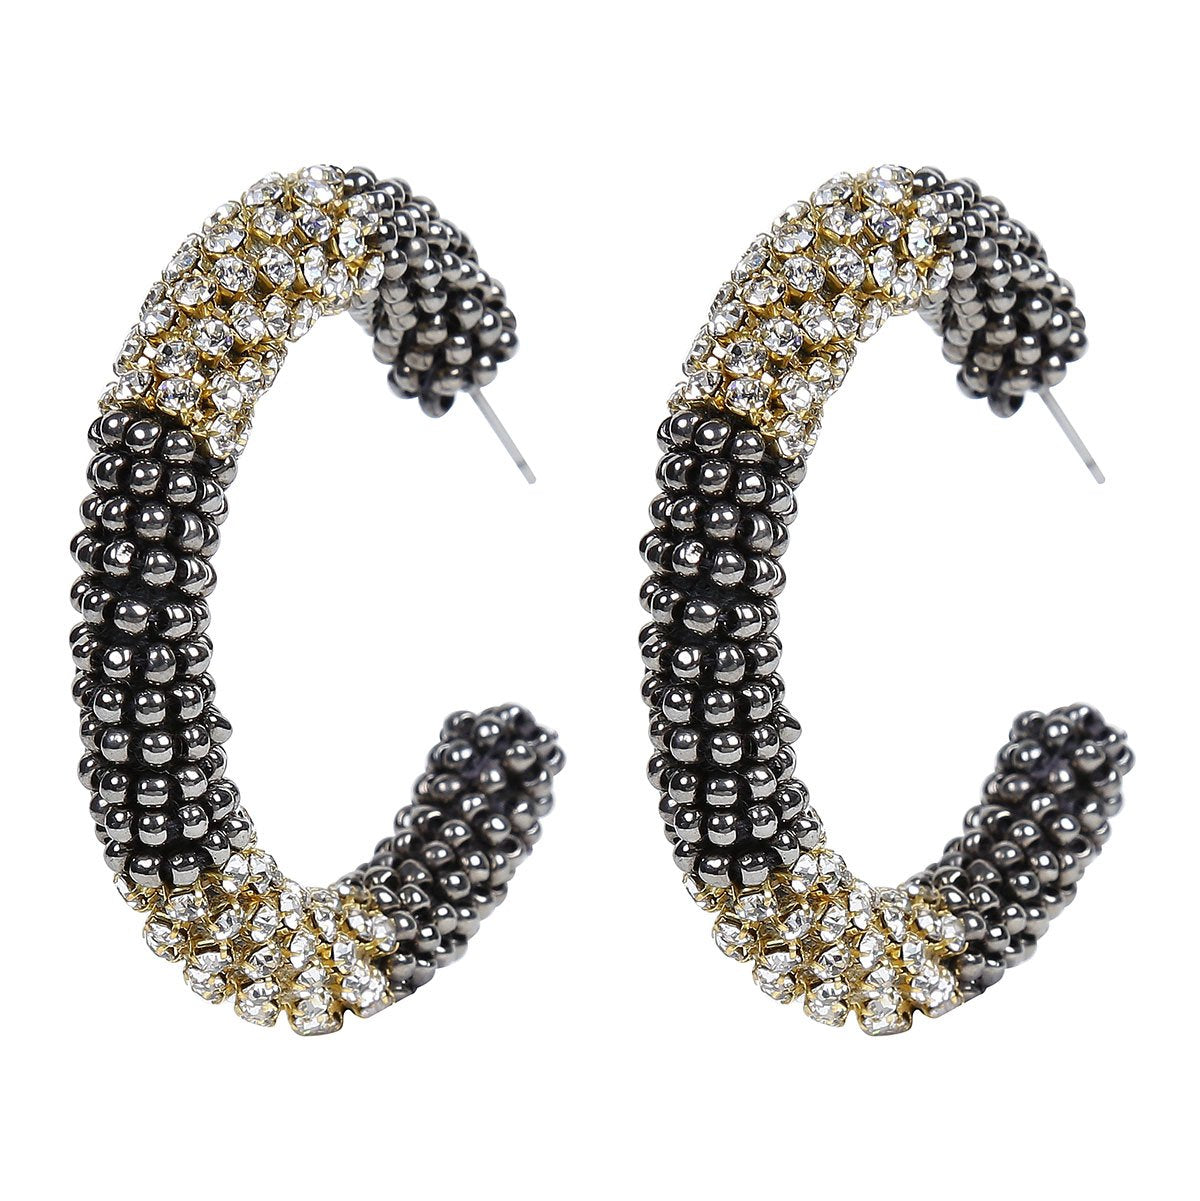 Deepa by Deepa Gurnani Handmade Beaded Hoop Earrings